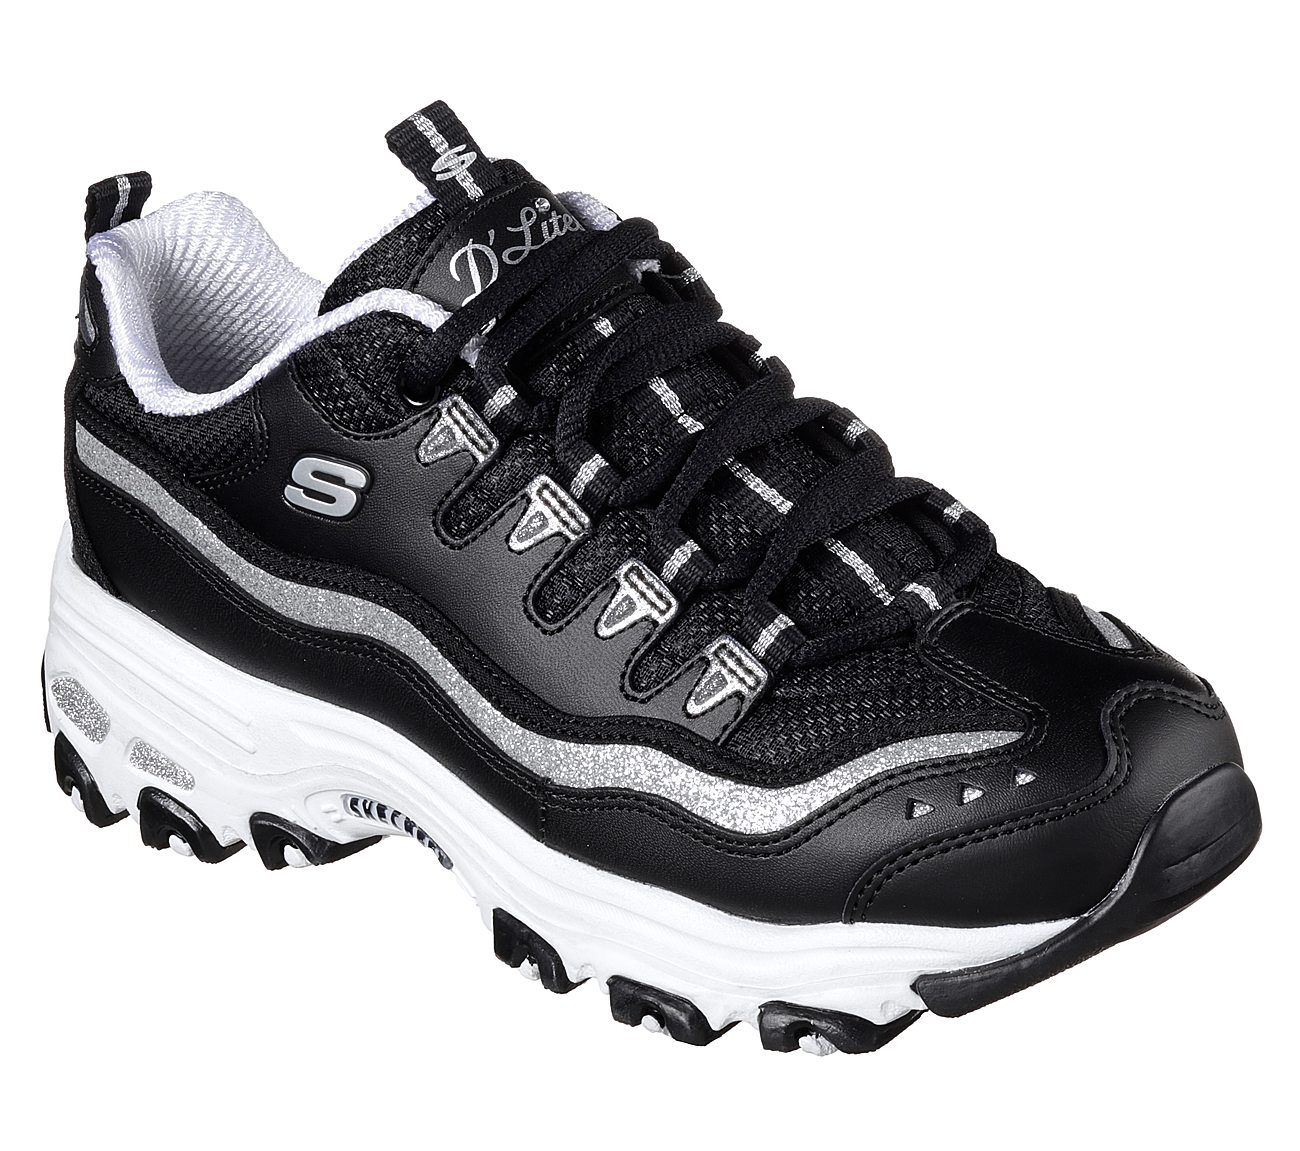 2787fd18358a Buy SKECHERS D Lites - Now and Then Skechers D Lites Shoes only £64.00